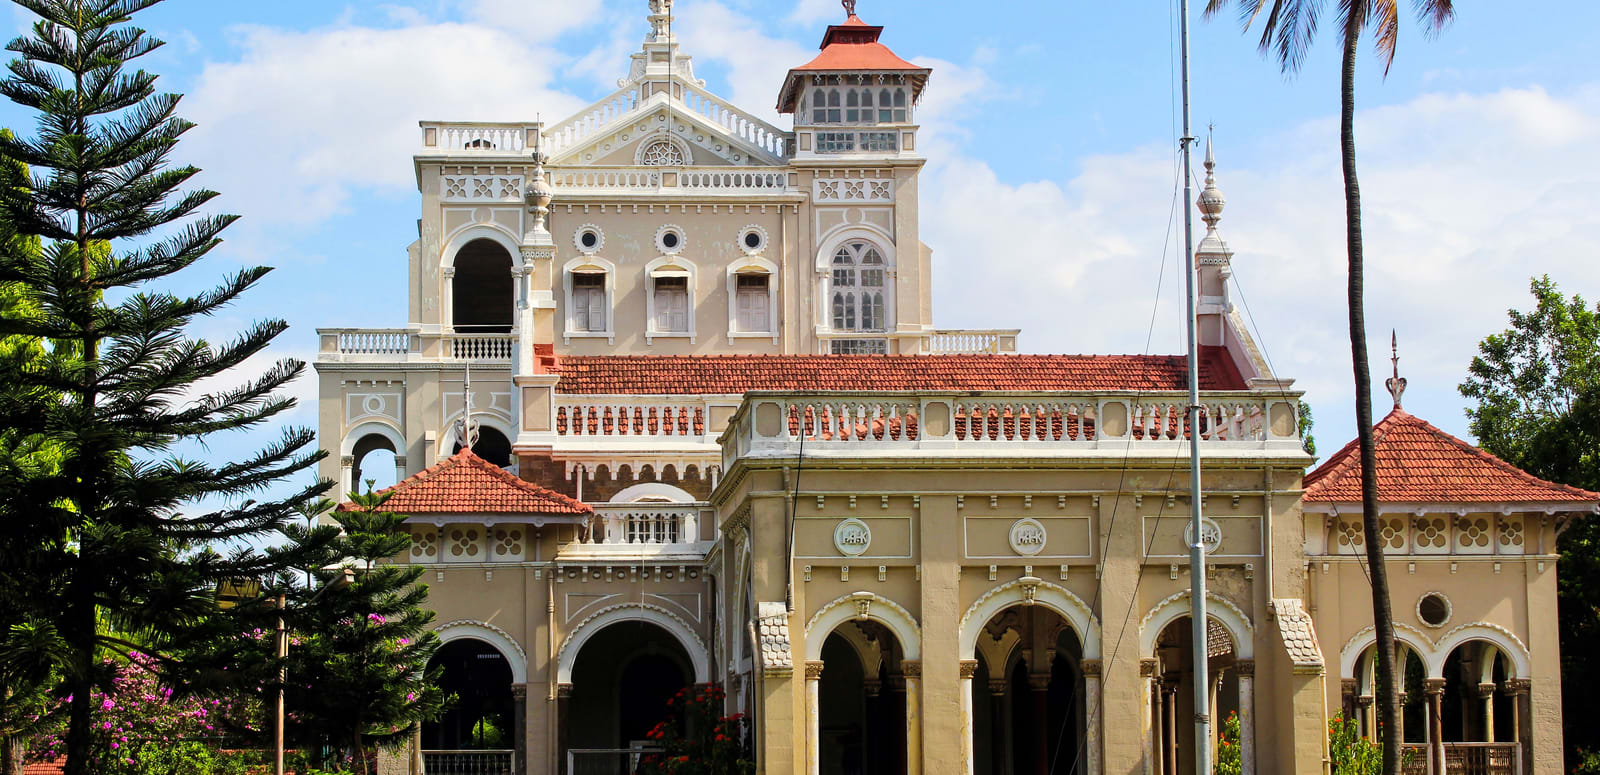 50 BEST Places to Visit in PUNE - 2019 (Photos & Reviews)